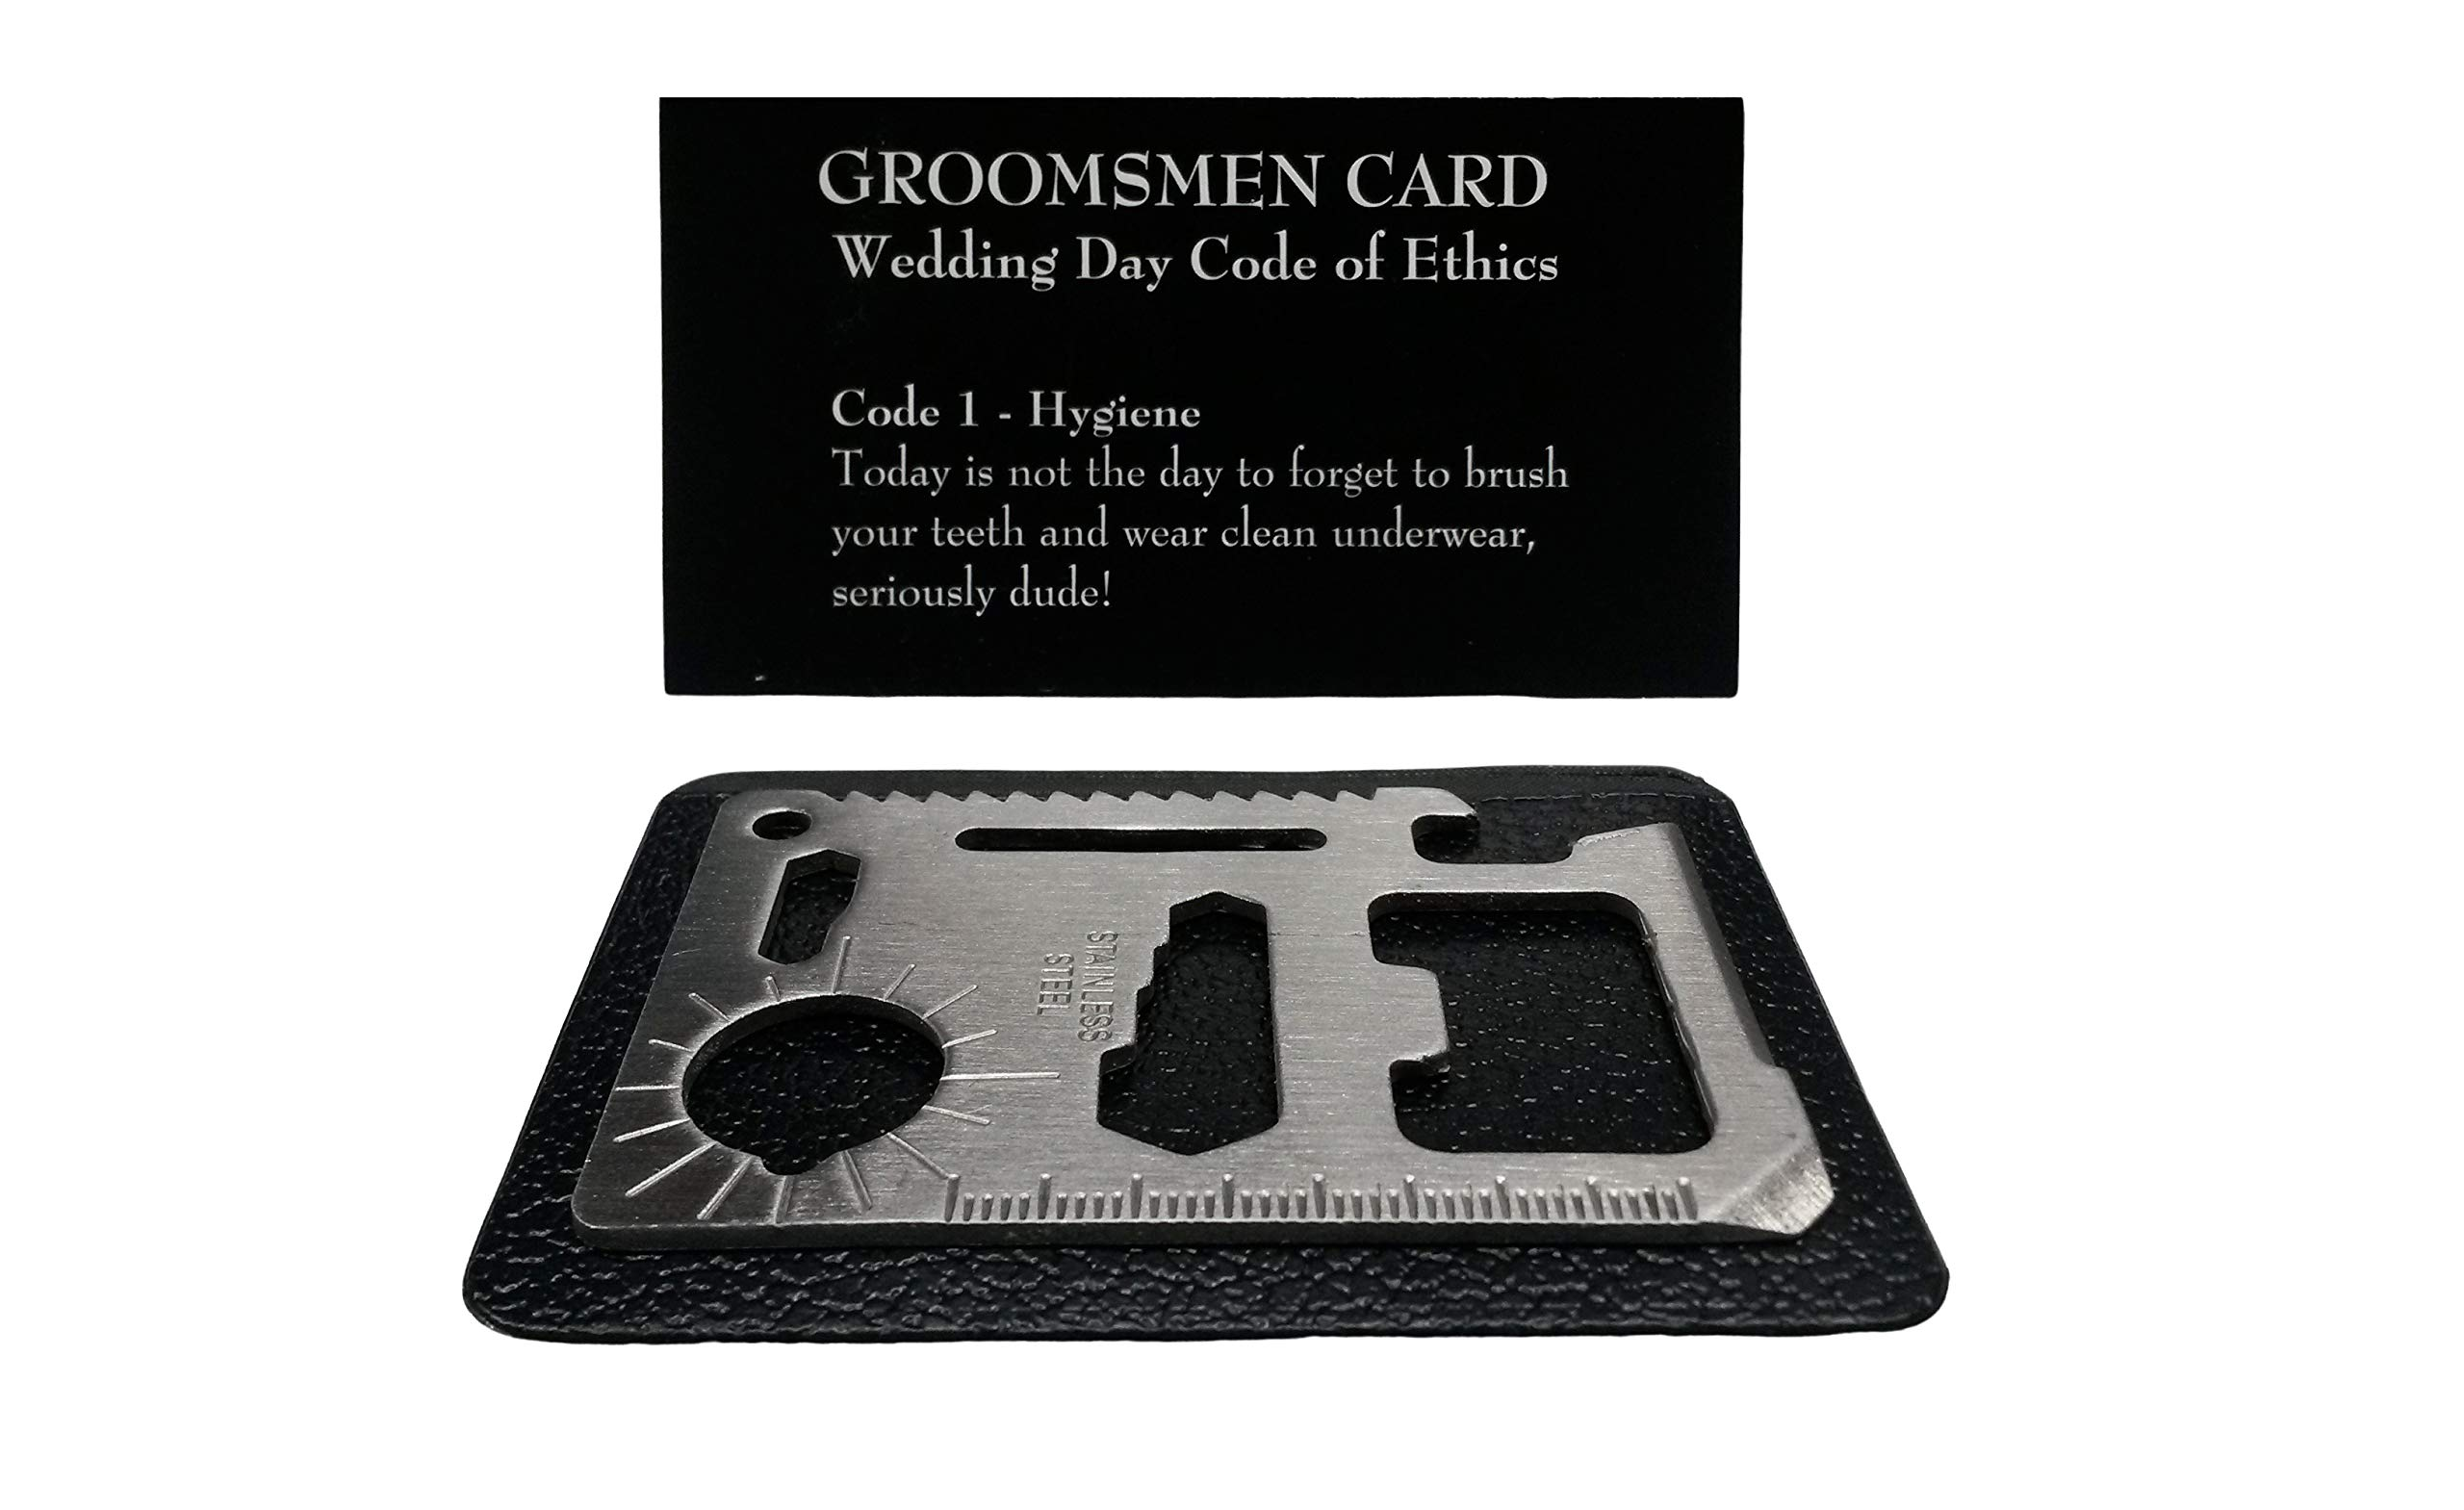 Groomsmen Gifts for Wedding - 6-Pack Pocket Size Man Card and 6-Pack Stainless Steel 11 in 1 Beer Opener Survival Wallet Card Tool Kit